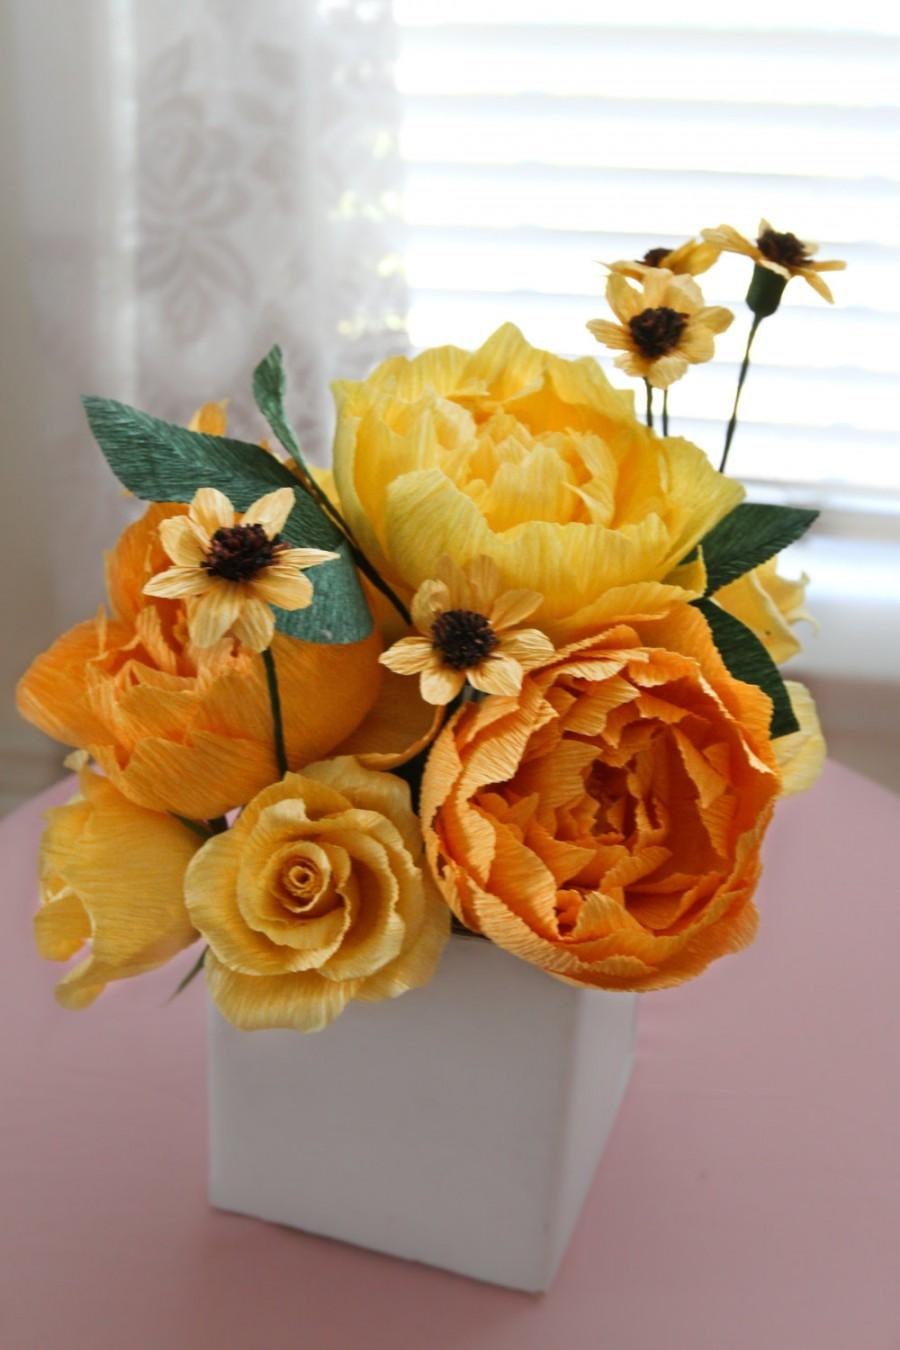 1 yellow shade peonies centerpiece paper flowers wedding 1 yellow shade peonies centerpiece paper flowers wedding centerpiece peonies centerpieces bridal bouquet crepe paper peonies mightylinksfo